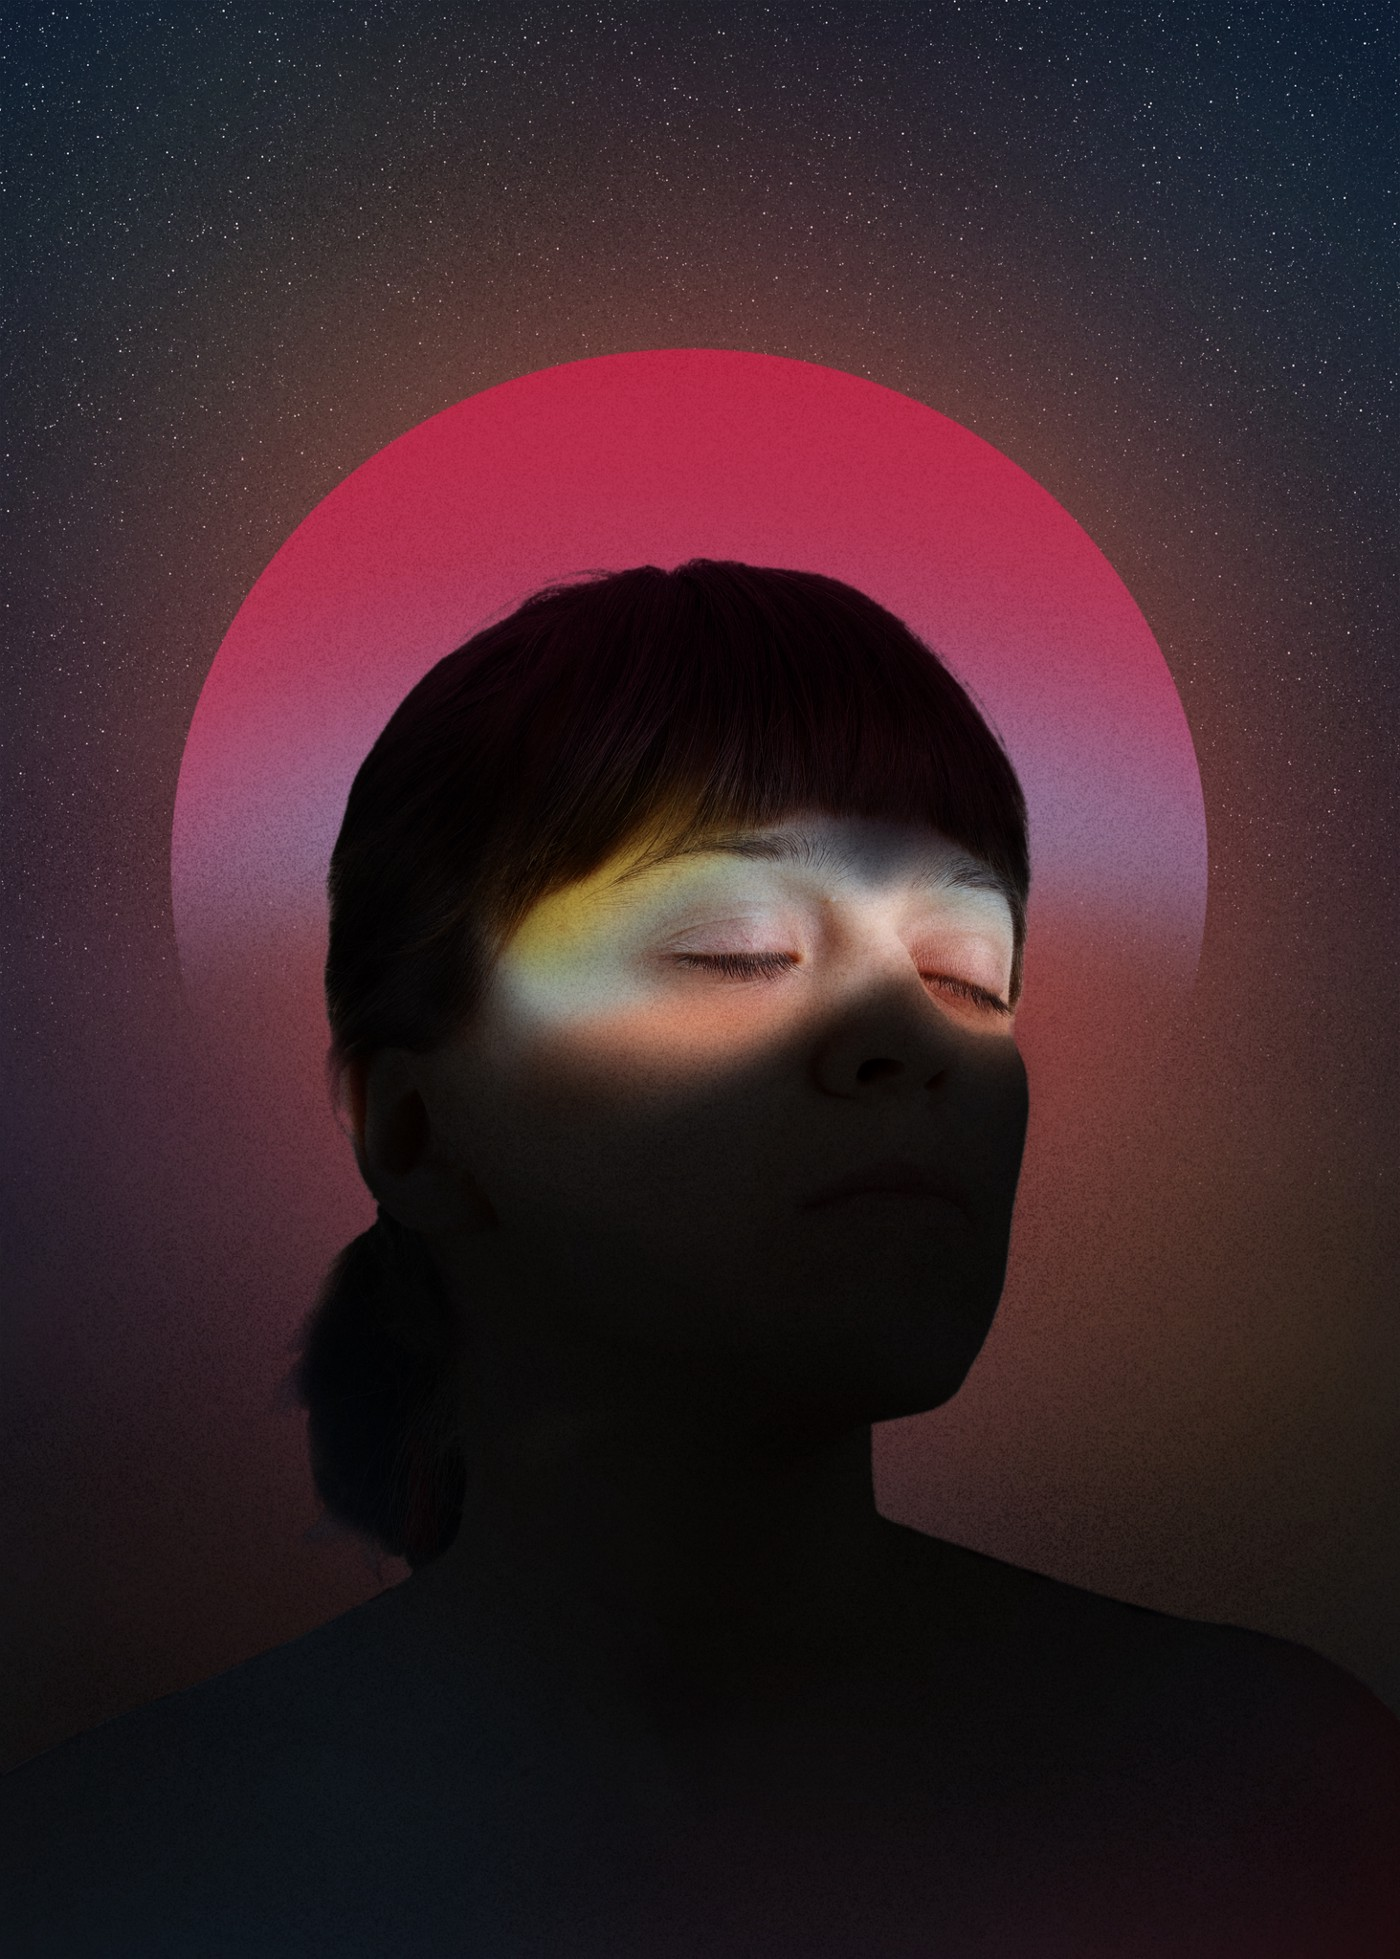 A woman with her eyes closed, only her eyes are lit on her face. There is a pink circle graphic behind her head.